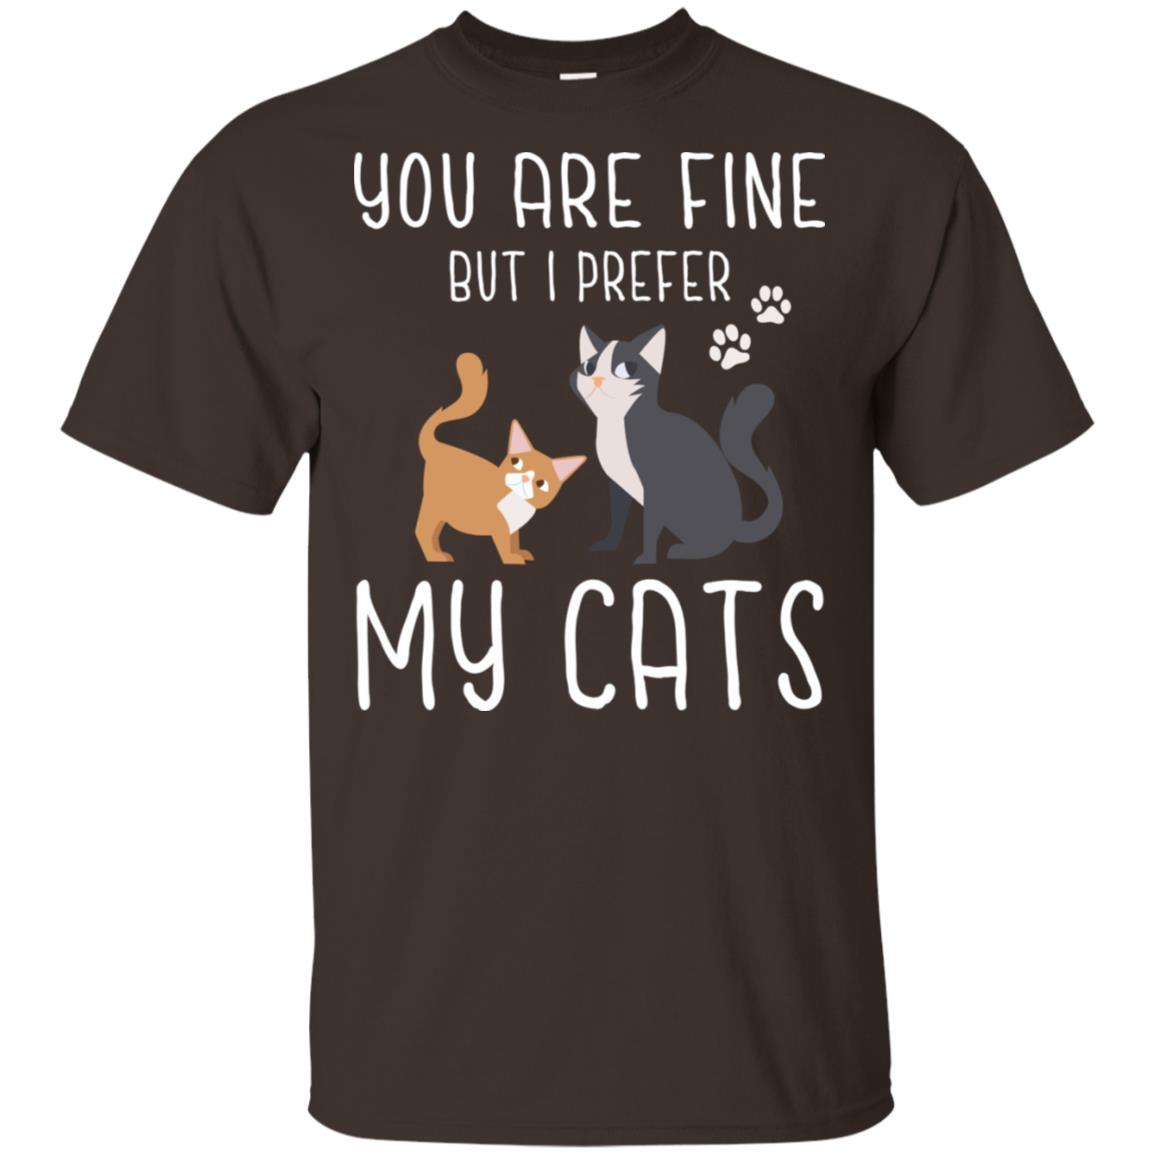 You Are Fine But I Prefer My Cats Unisex Short Sleeve